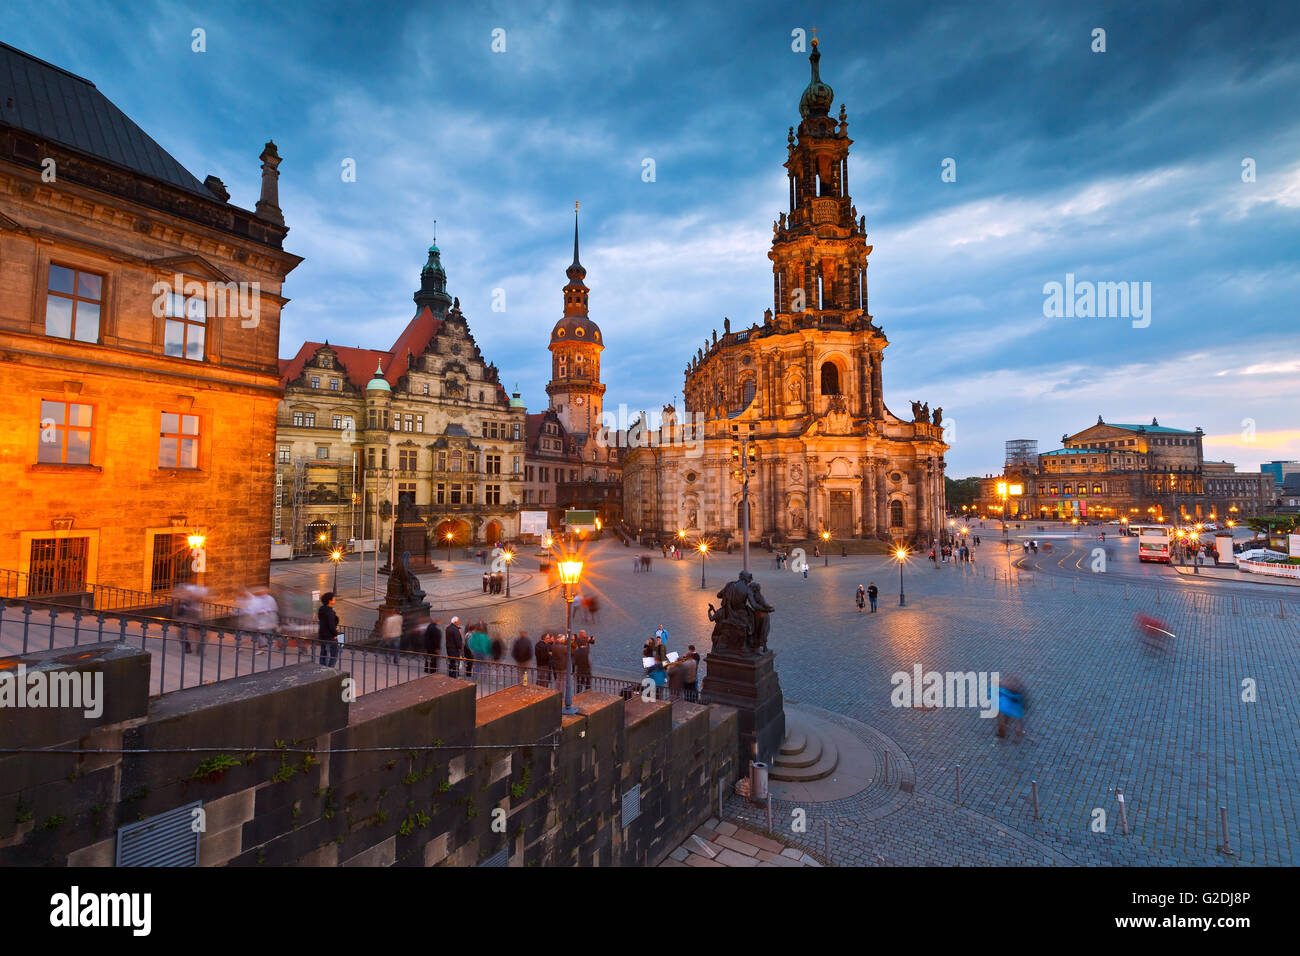 Historic architecture in the old town of Dresden, Germany. - Stock Image